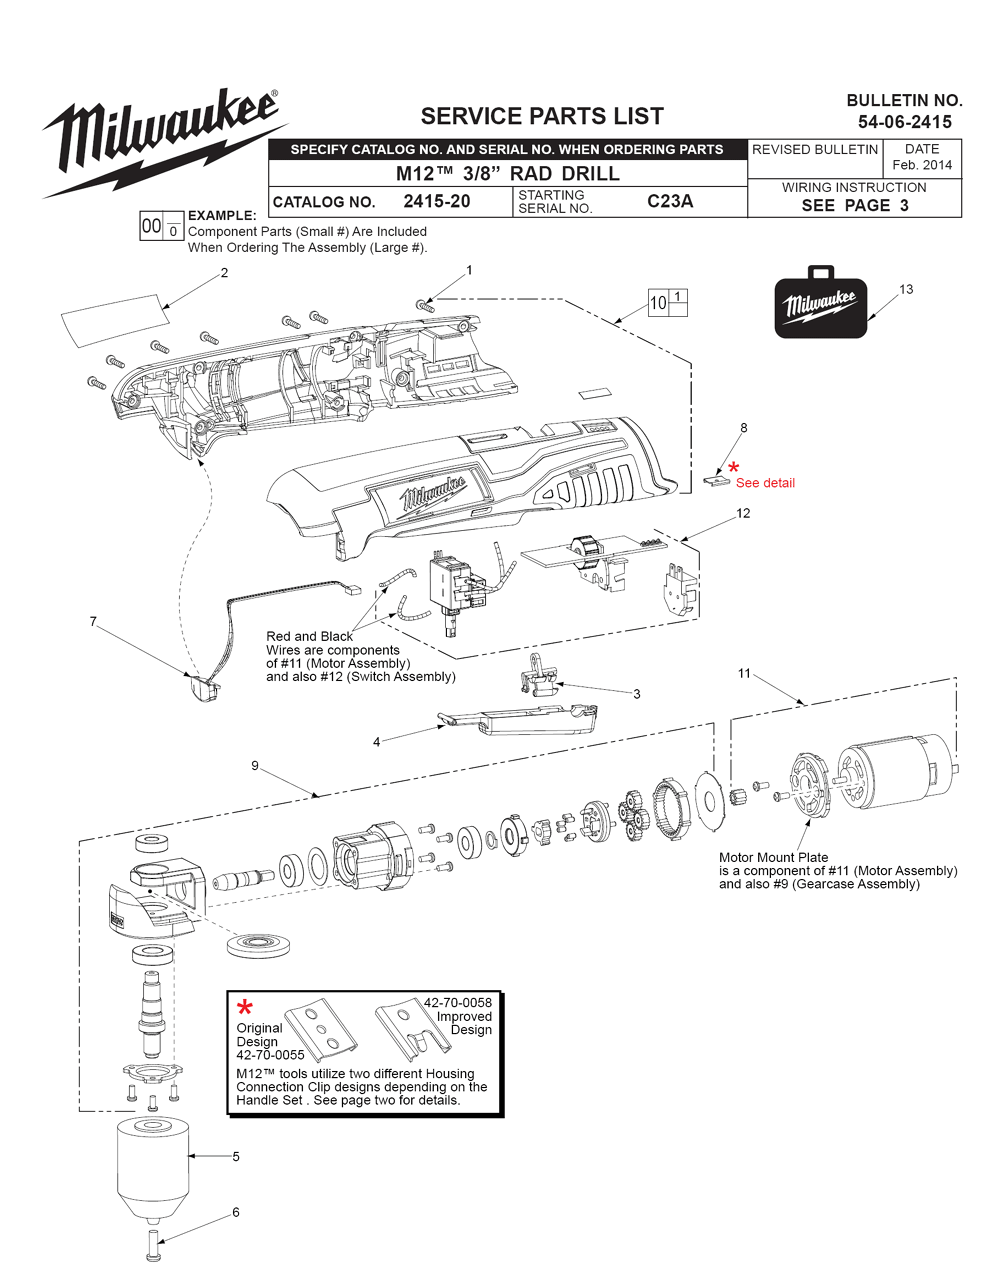 Milwaukee Switch Wiring Diagram Libraries Drill Buy 2415 20 C23a Replacement Tool Parts 2415milwaukee